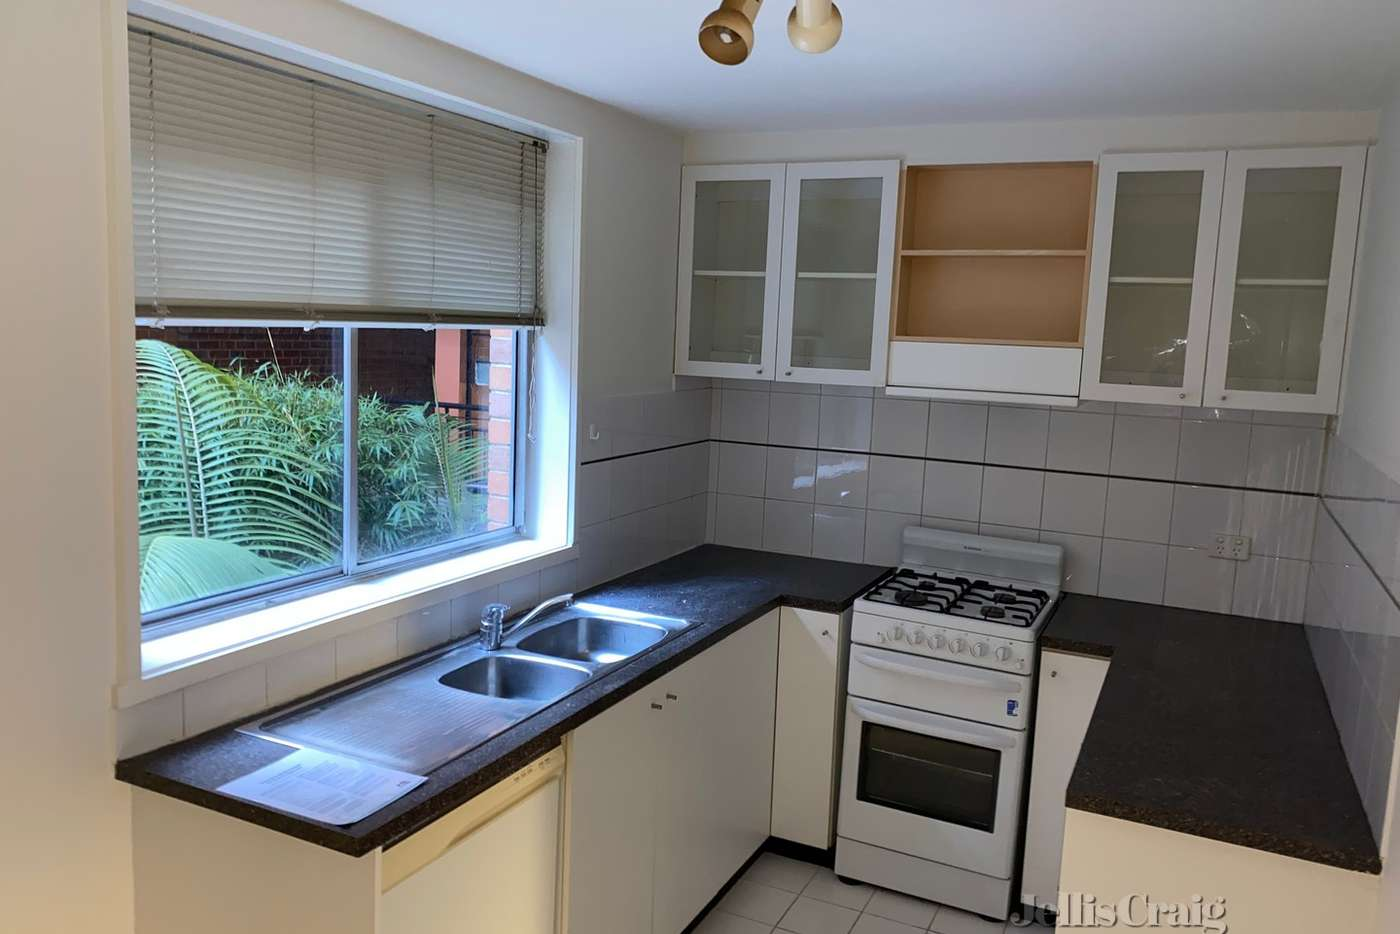 Main view of Homely apartment listing, 25/212 The Avenue, Parkville VIC 3052